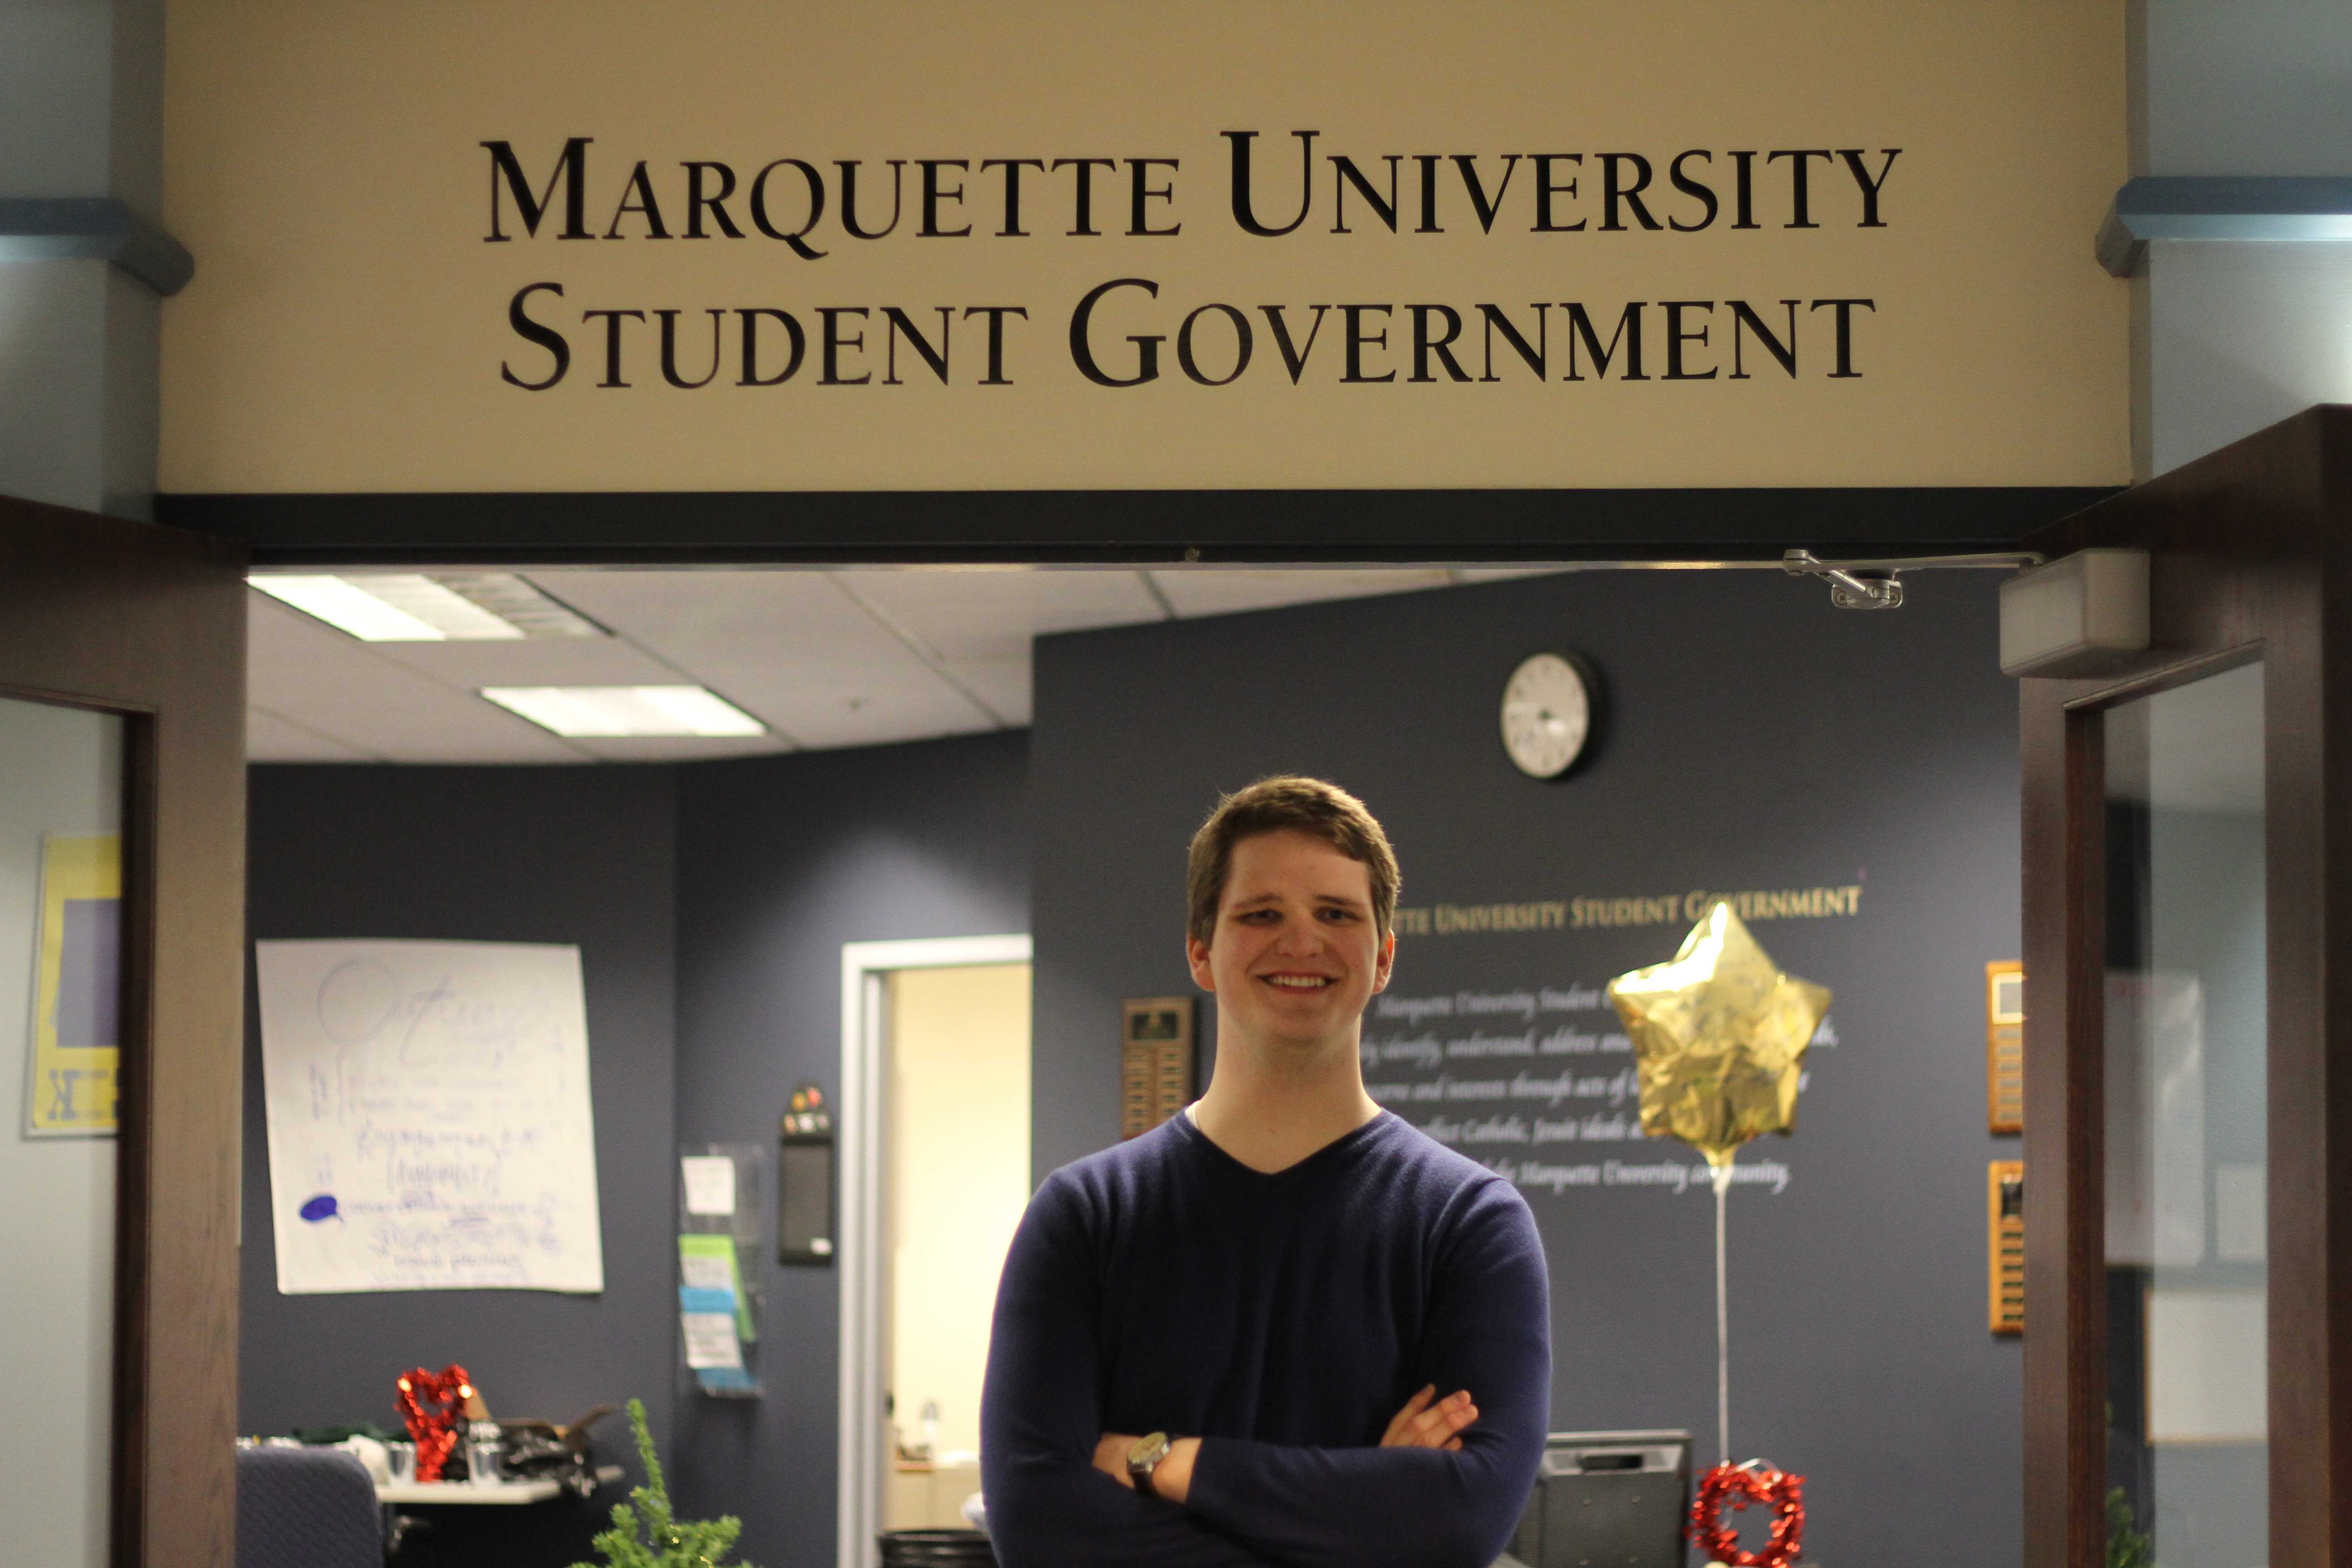 Marquette Student Government President Kyle Whelton said he would like to spend the Prior Year Reserve Fund.